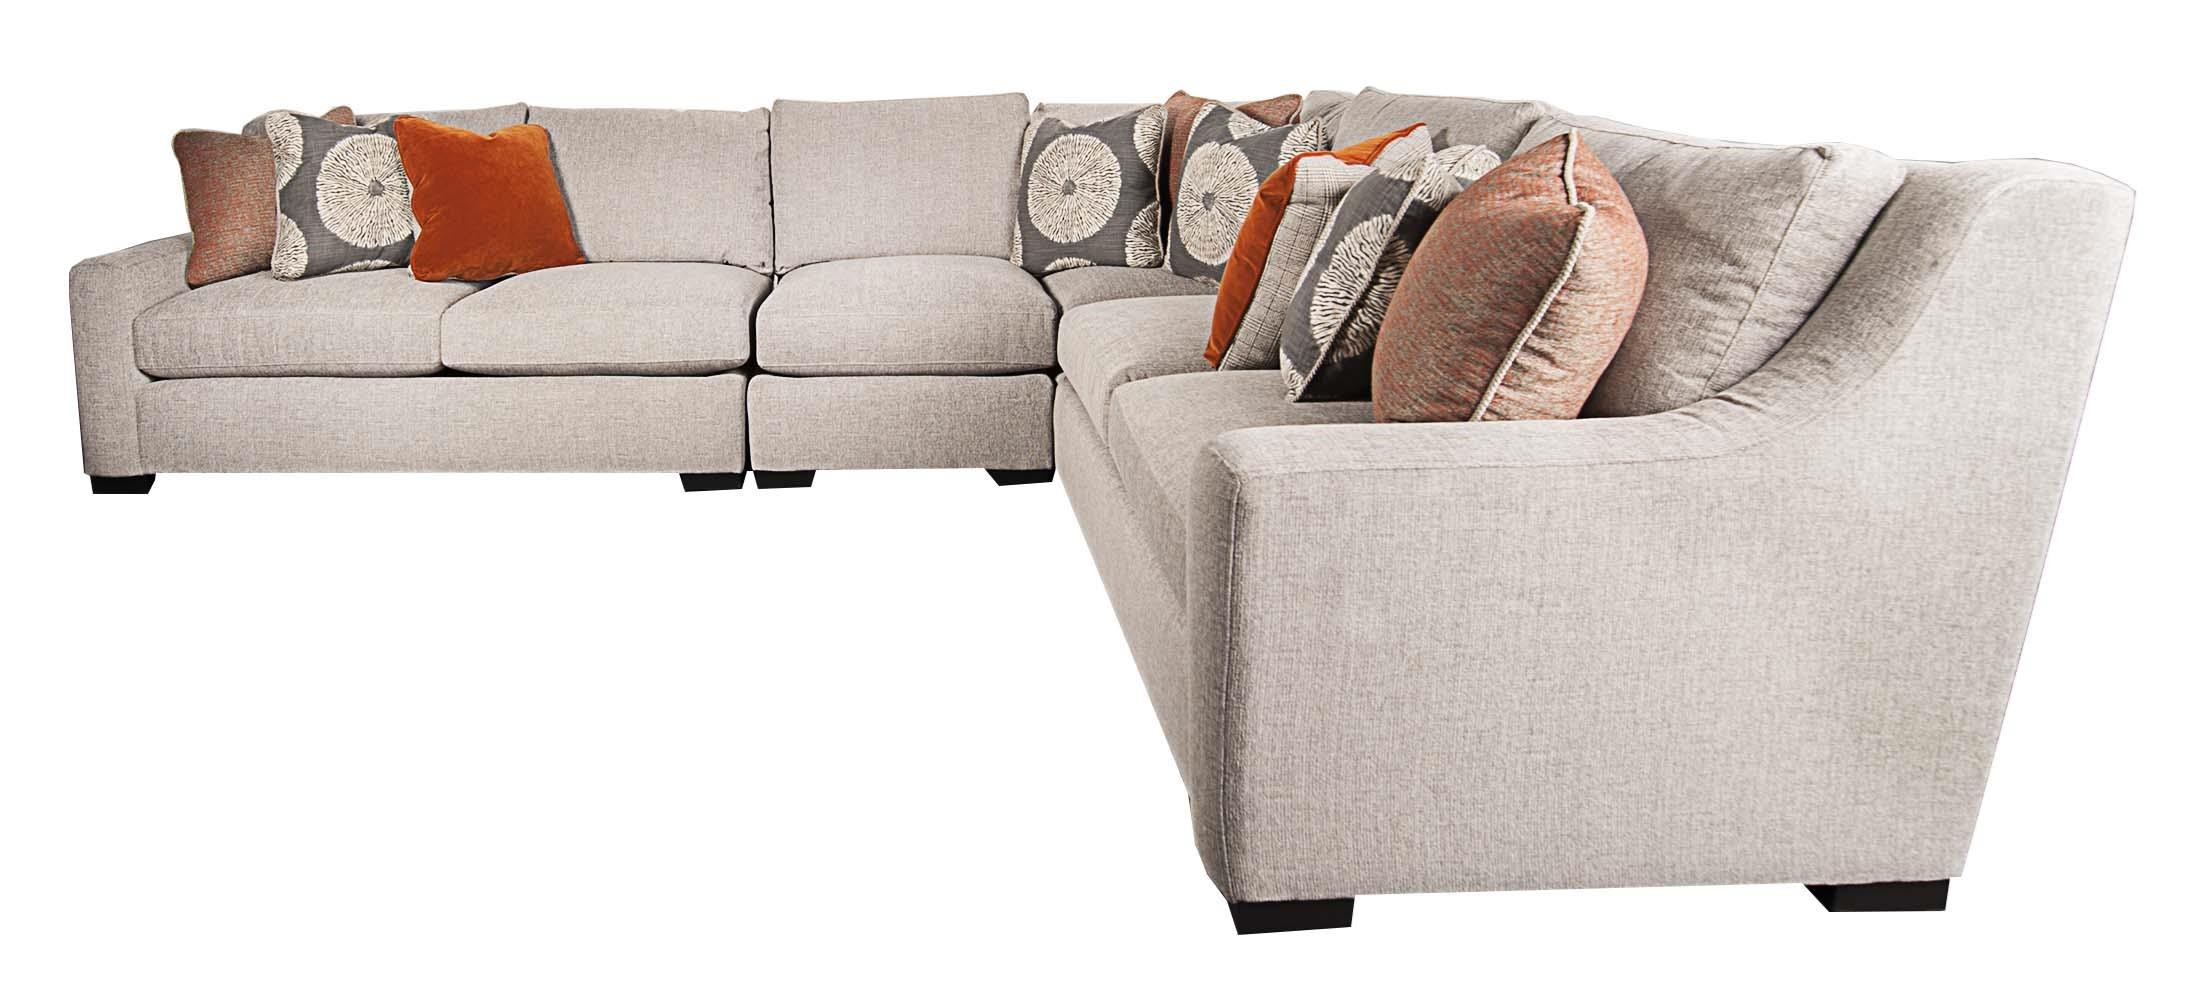 Bernhardt GermainGermain Modern Sectional Sofa; Bernhardt GermainGermain  Modern Sectional Sofa ...